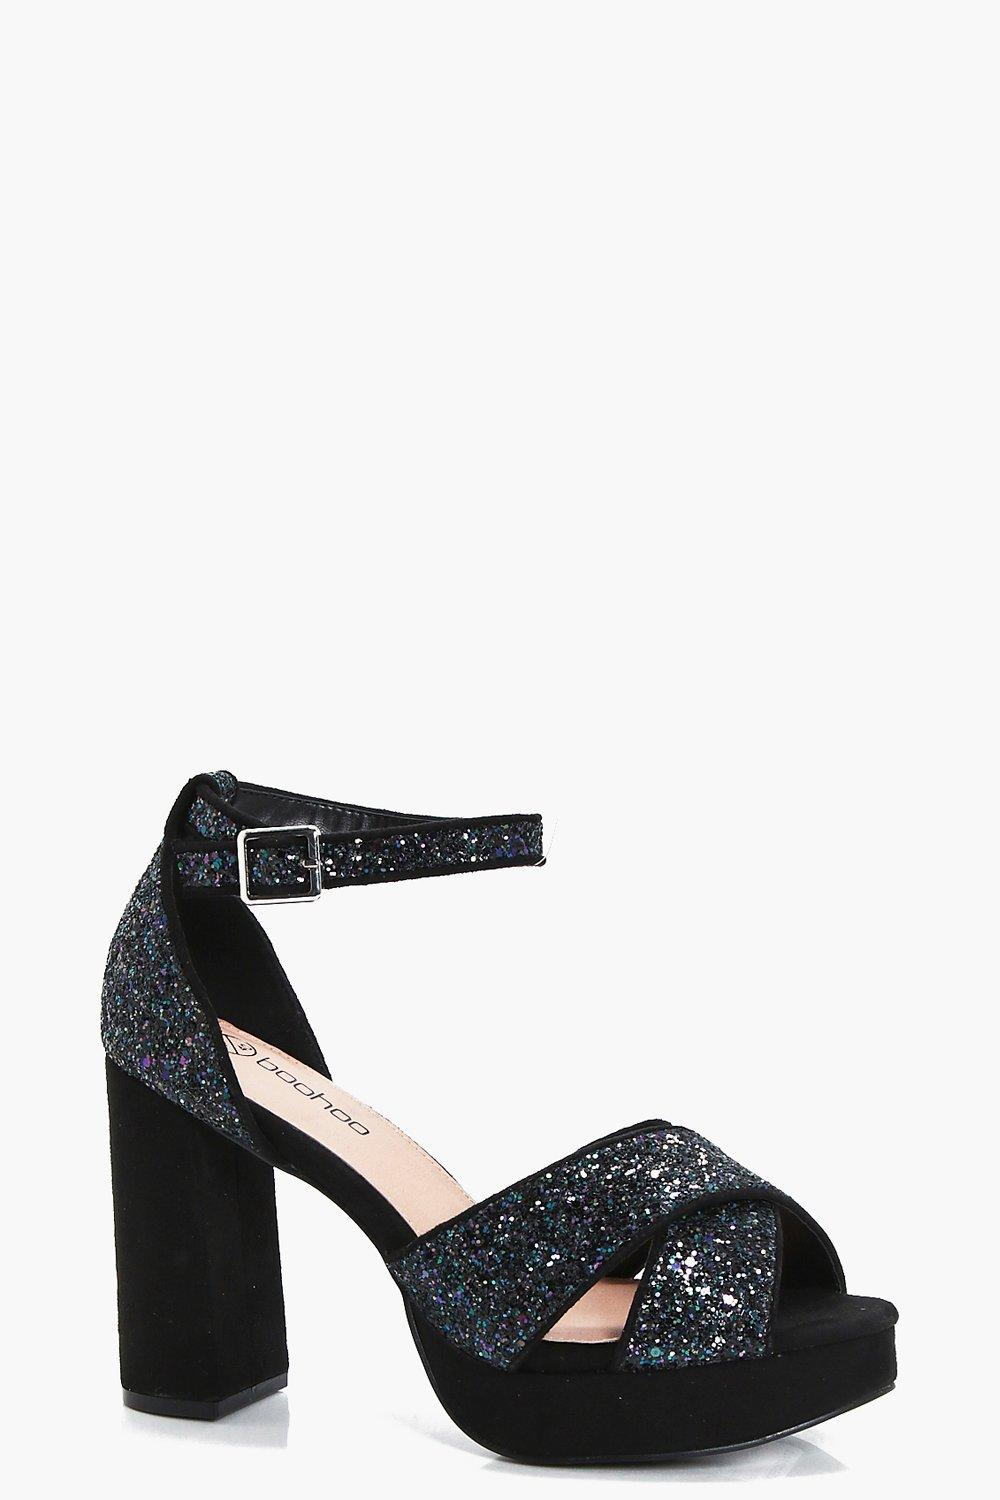 limited guantity wholesale sales for whole family Natalia Wide Fit Glitter Platform Heels | Boohoo